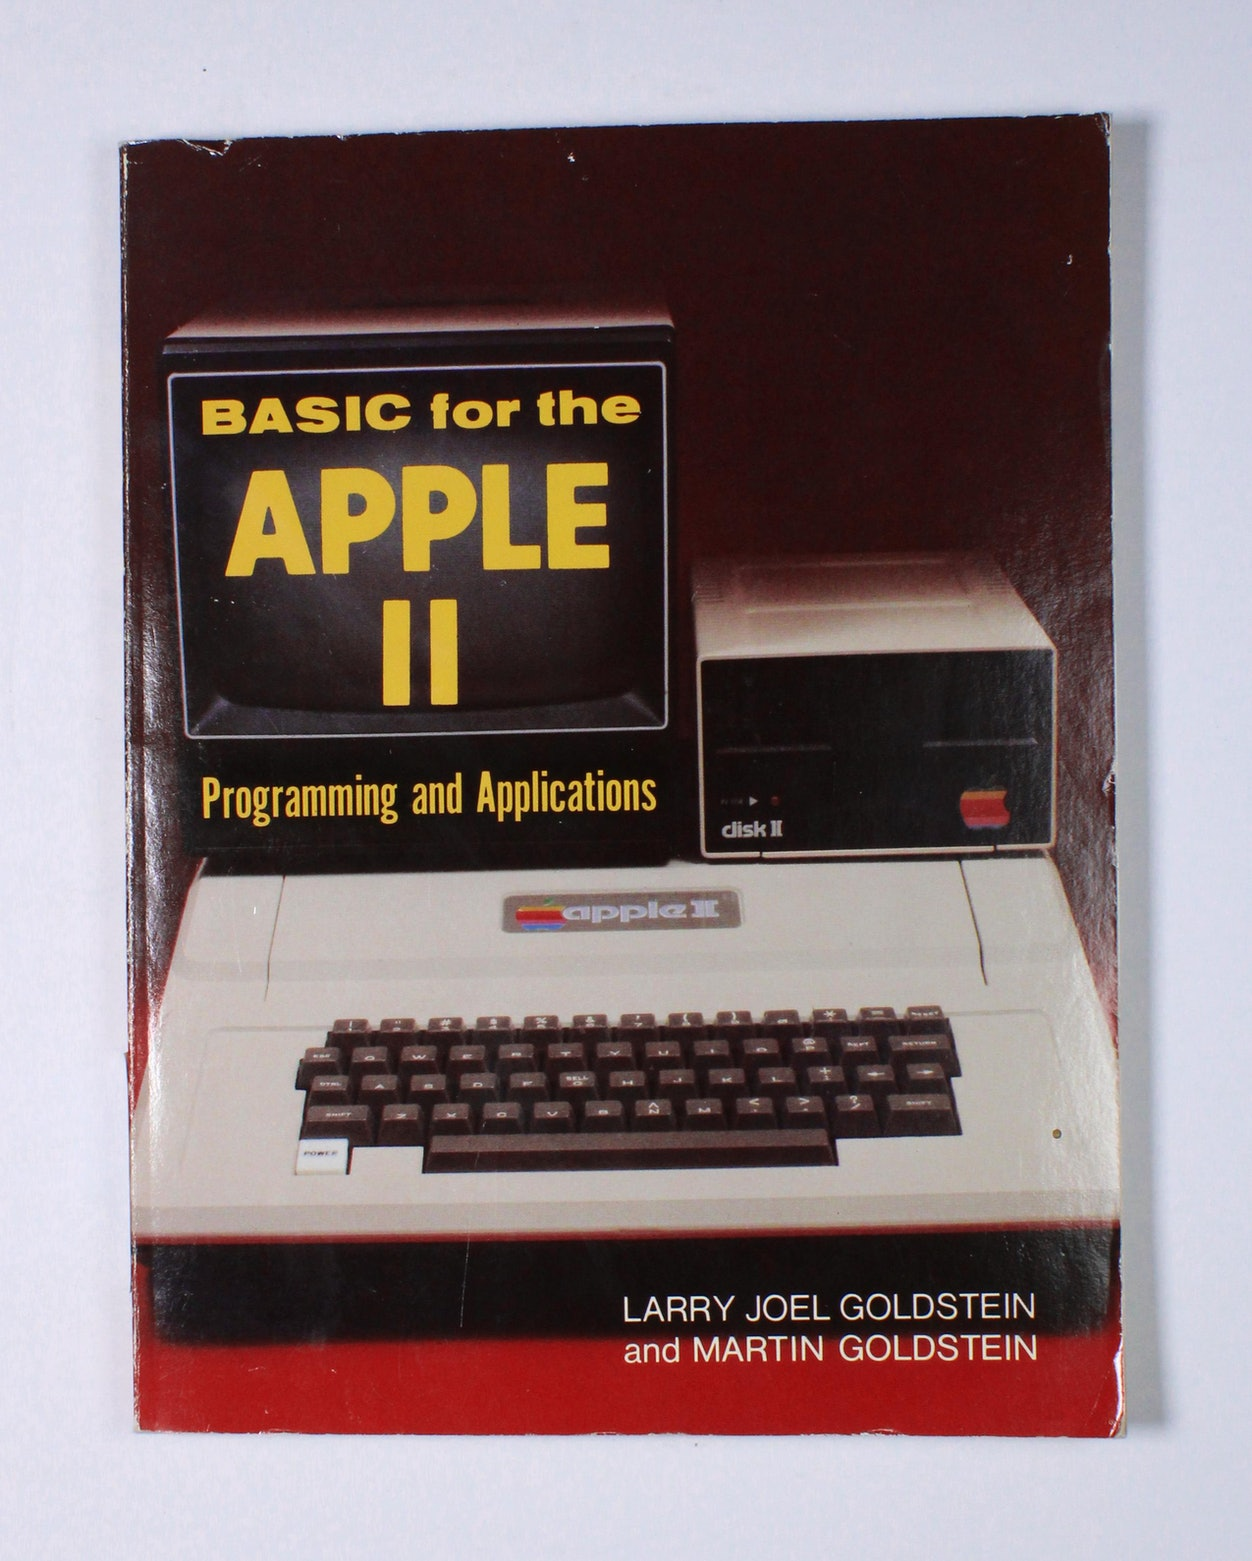 BASIC for the Apple II: Programming and Applications